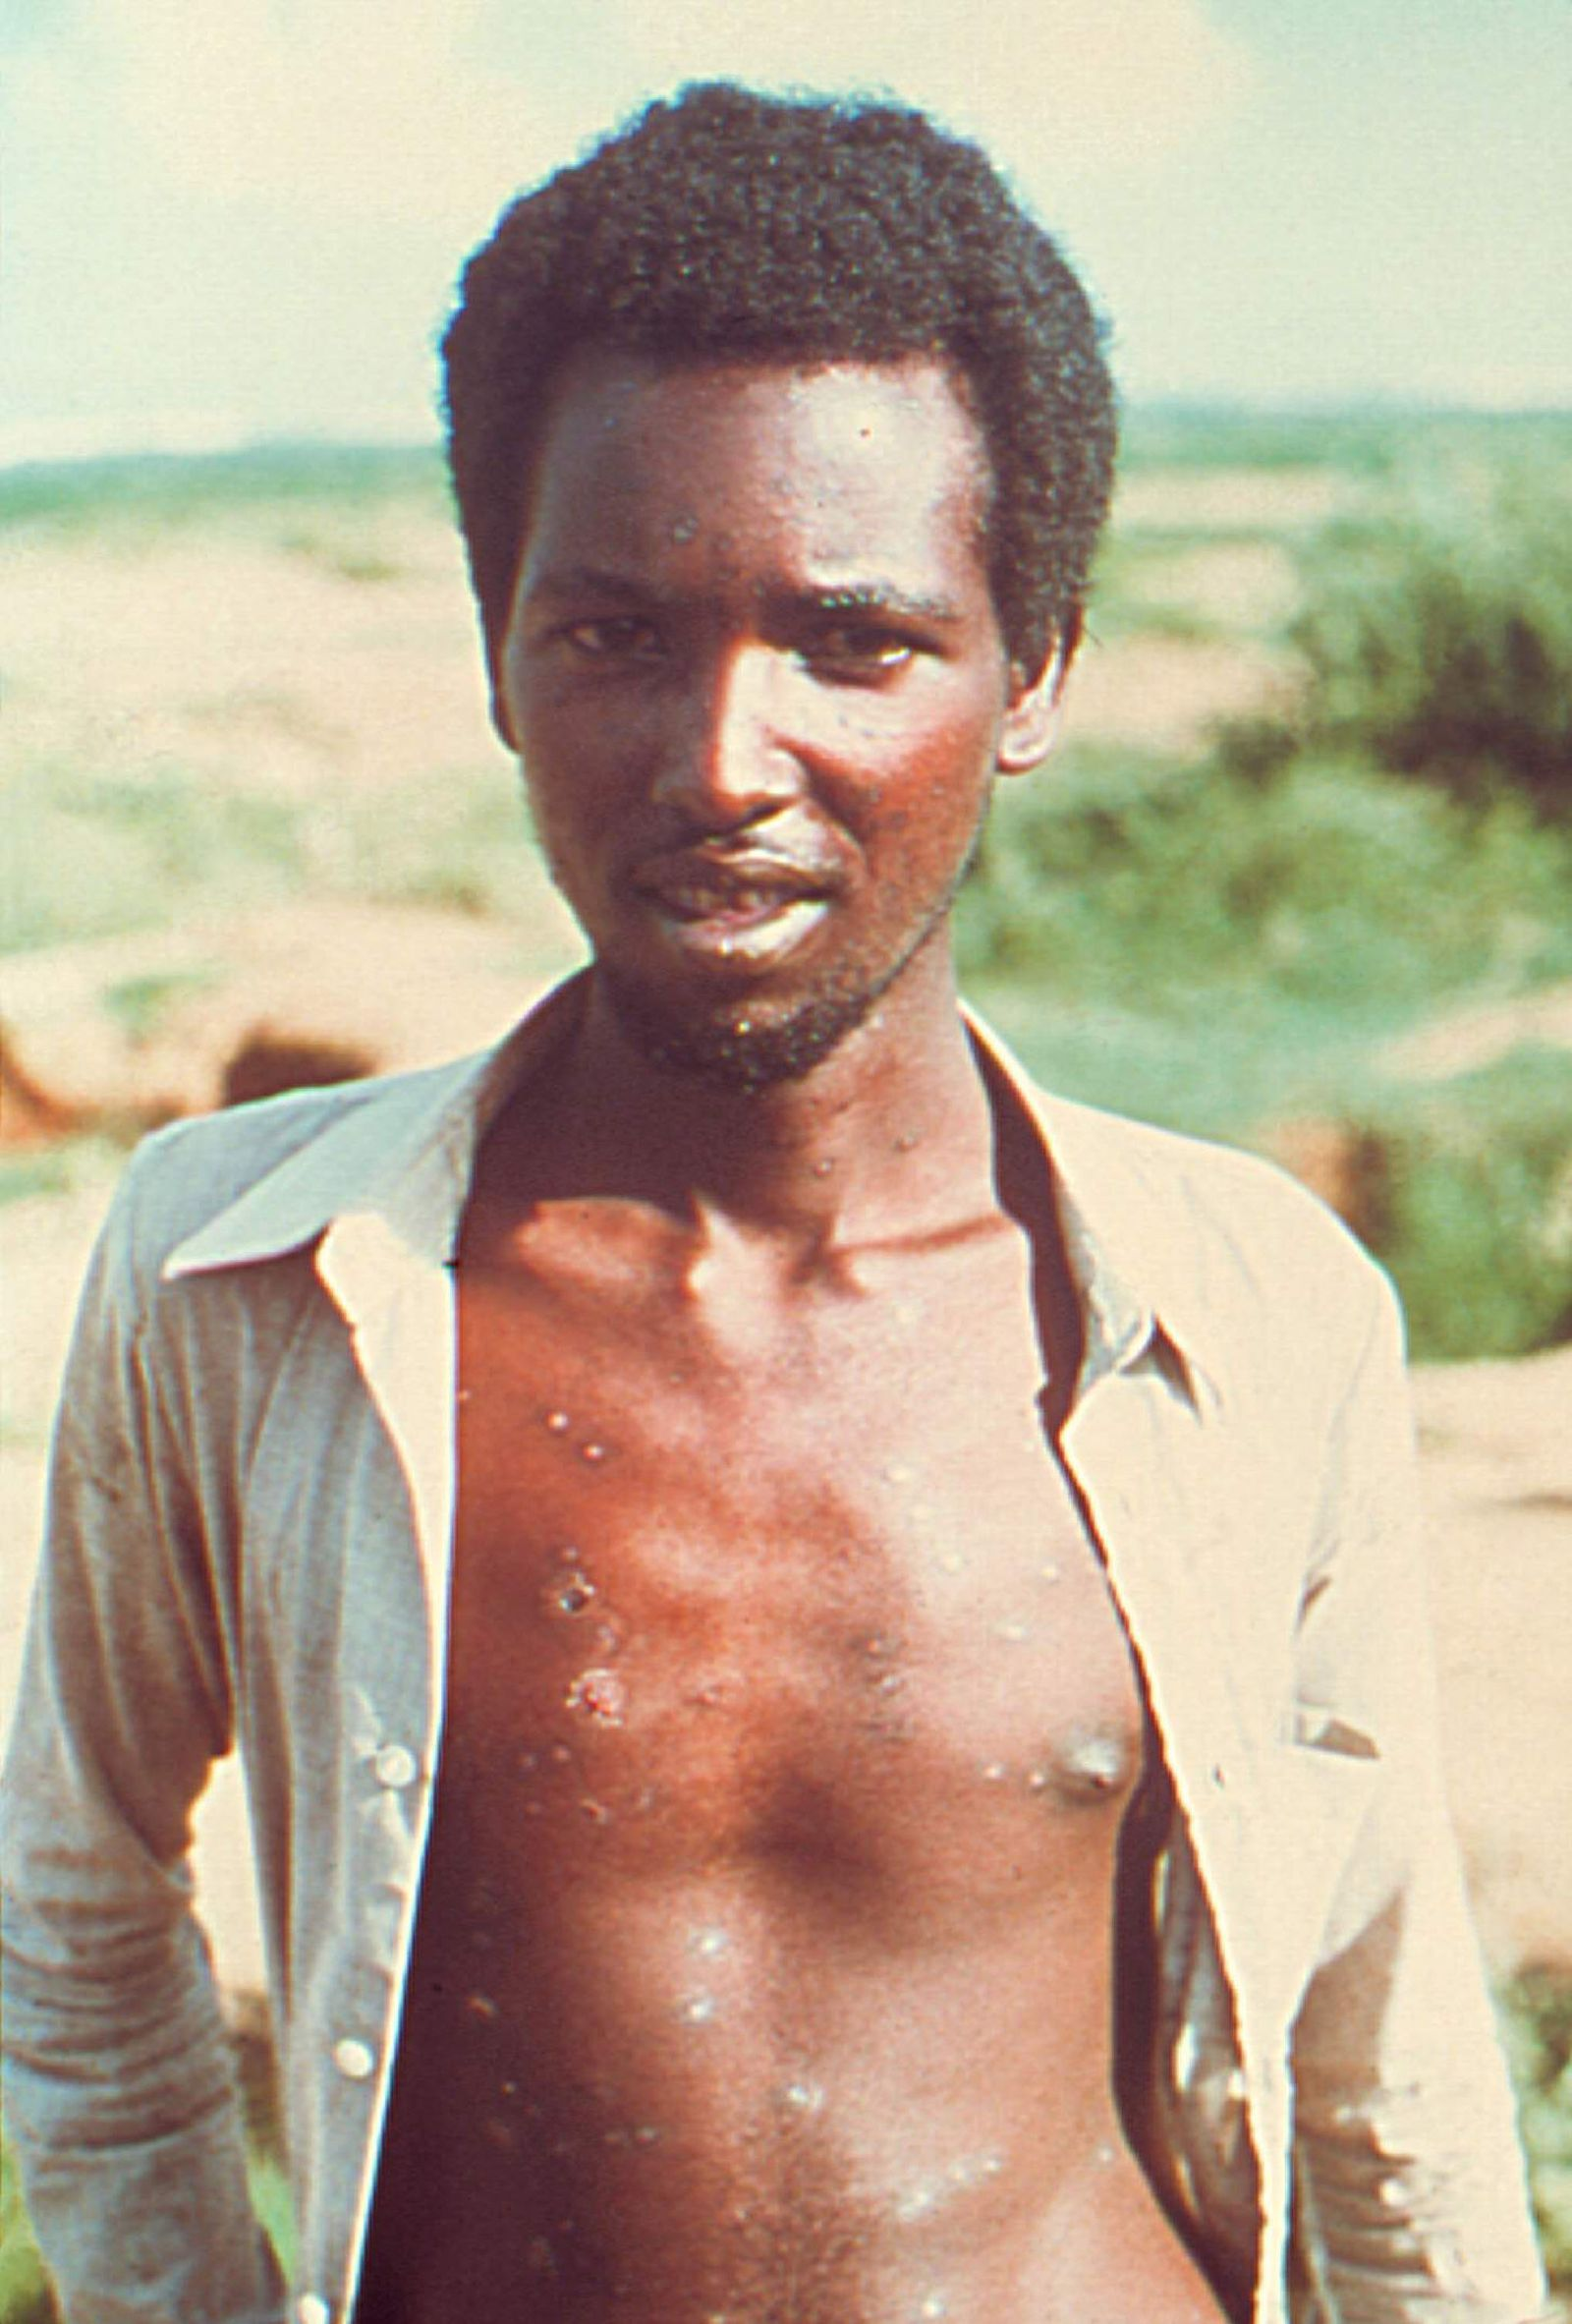 Twenty Three Year Old Ali Maow Maalin The Last Known Person In The World With Smallpox